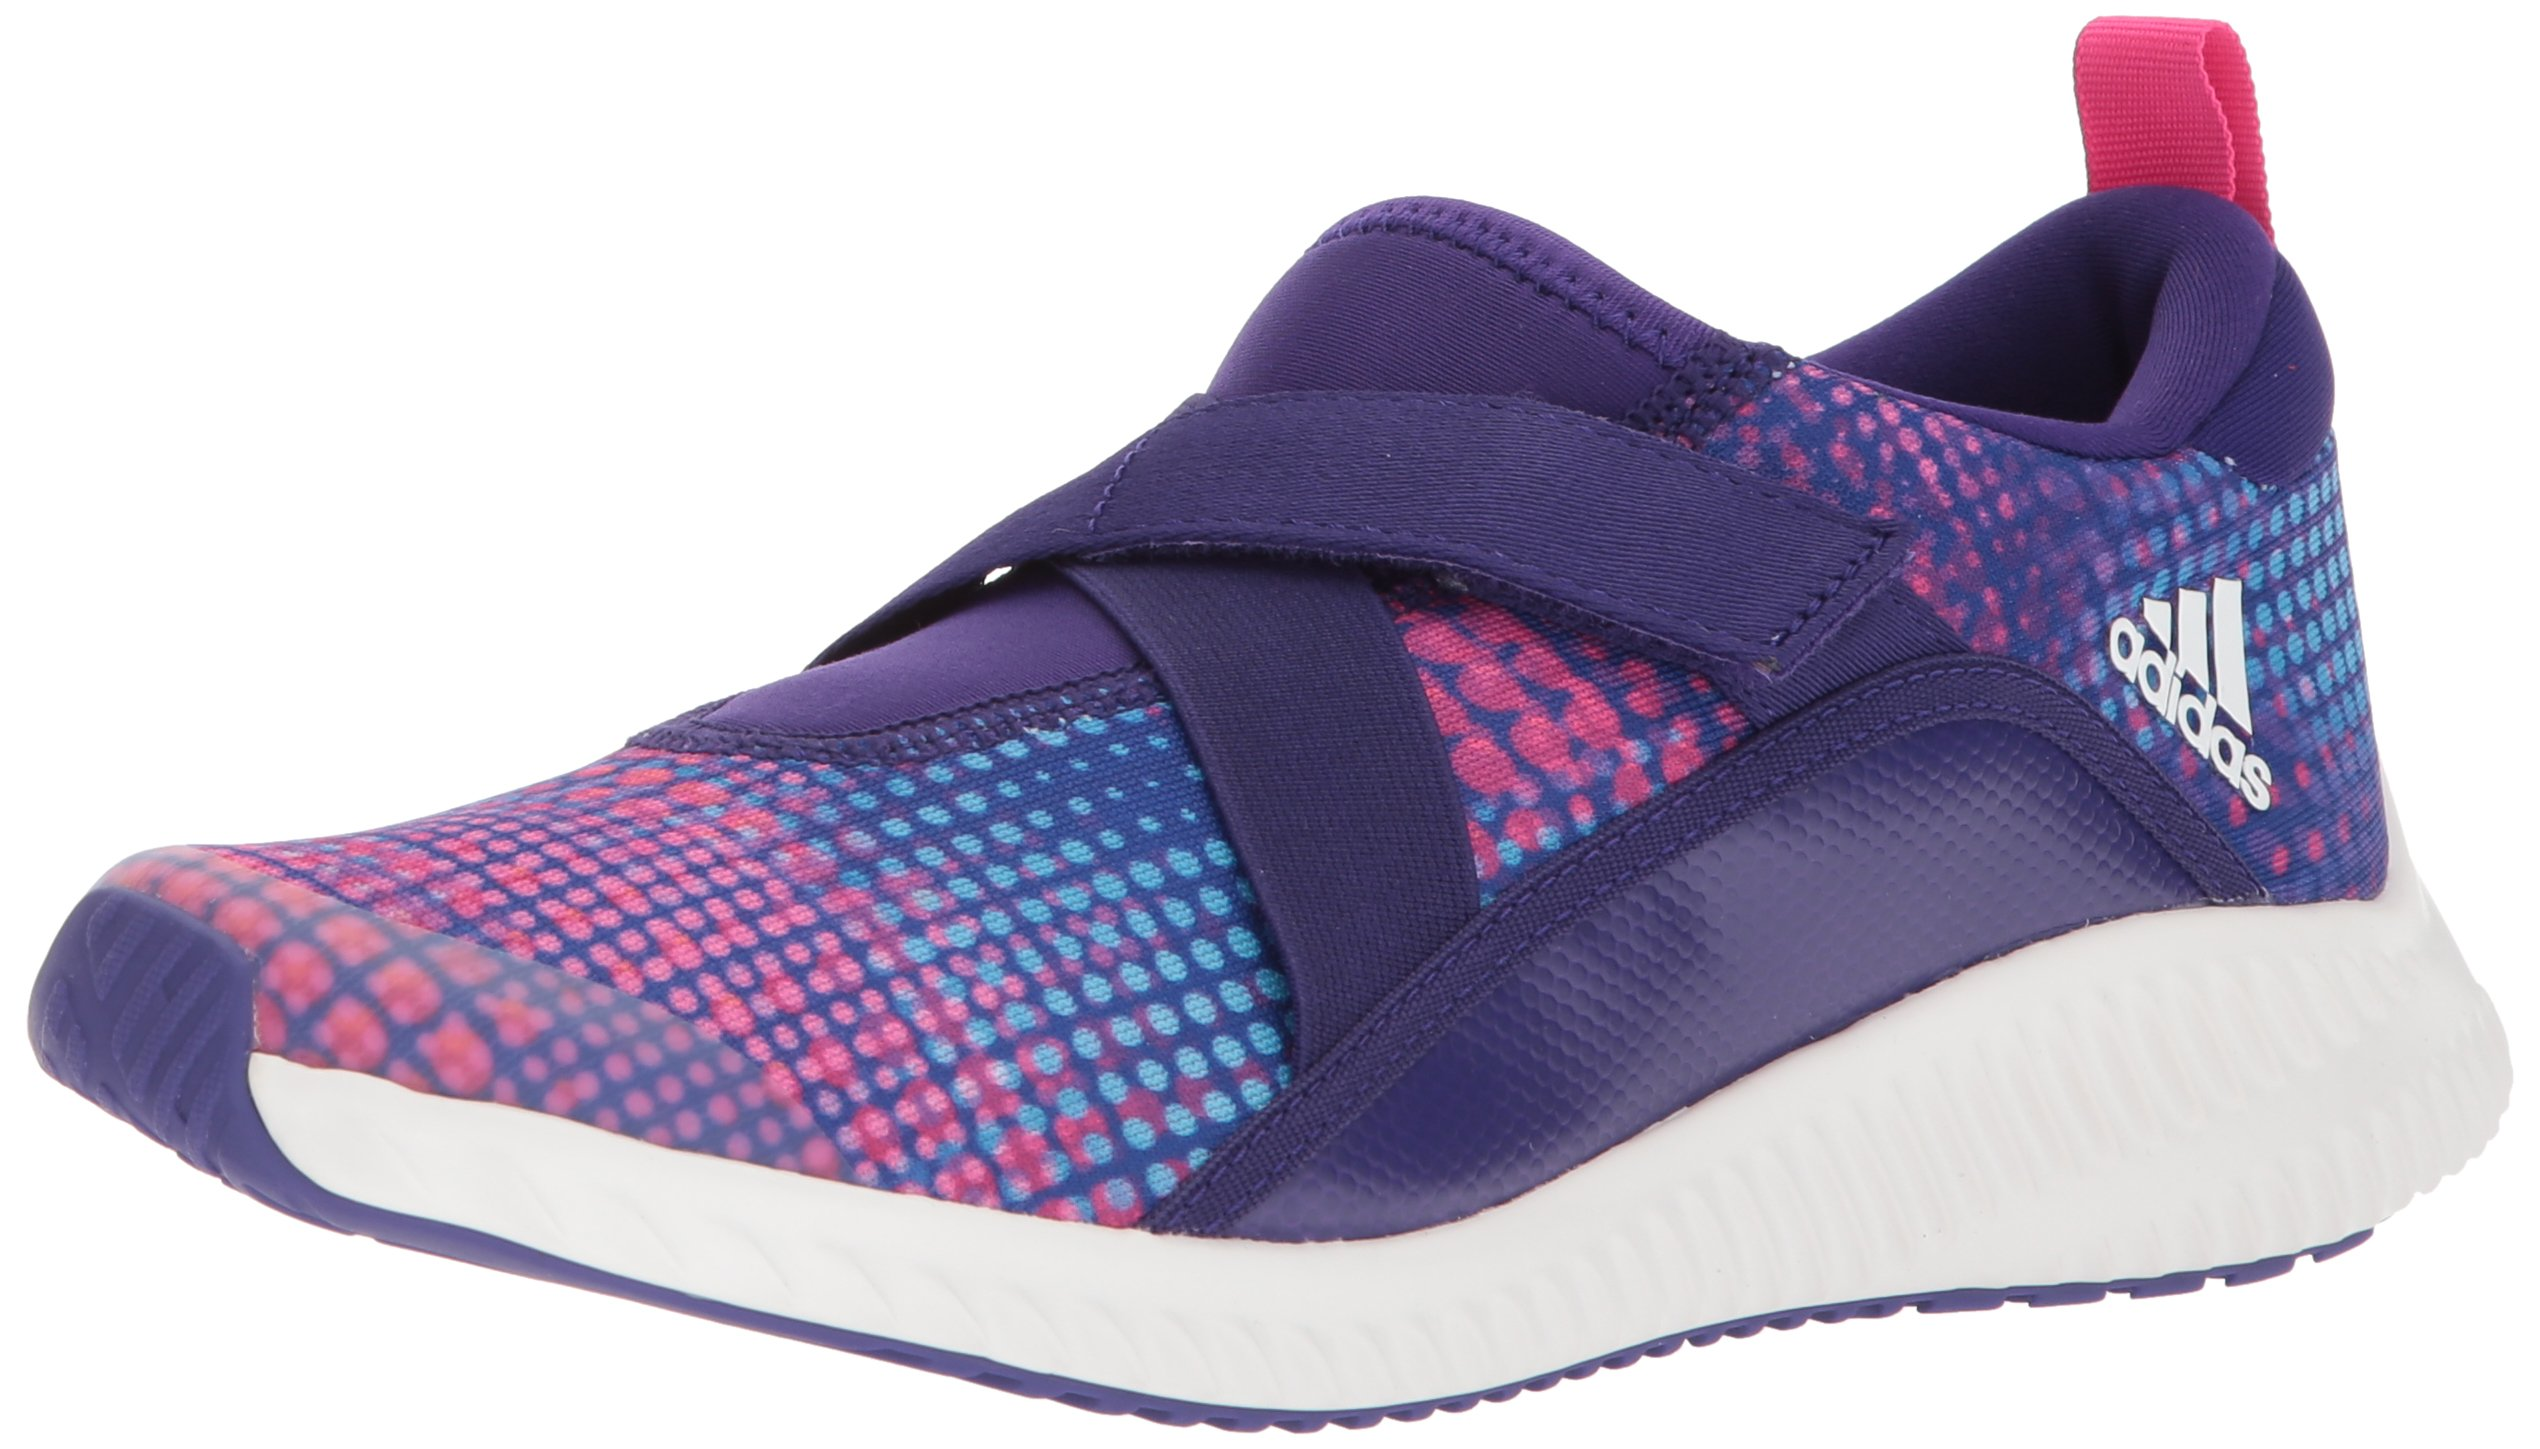 adidas Unisex-Kids Fortarun Sneaker, Collegiate Purple,White, Shock Pink, 1.5 M US Little Kid